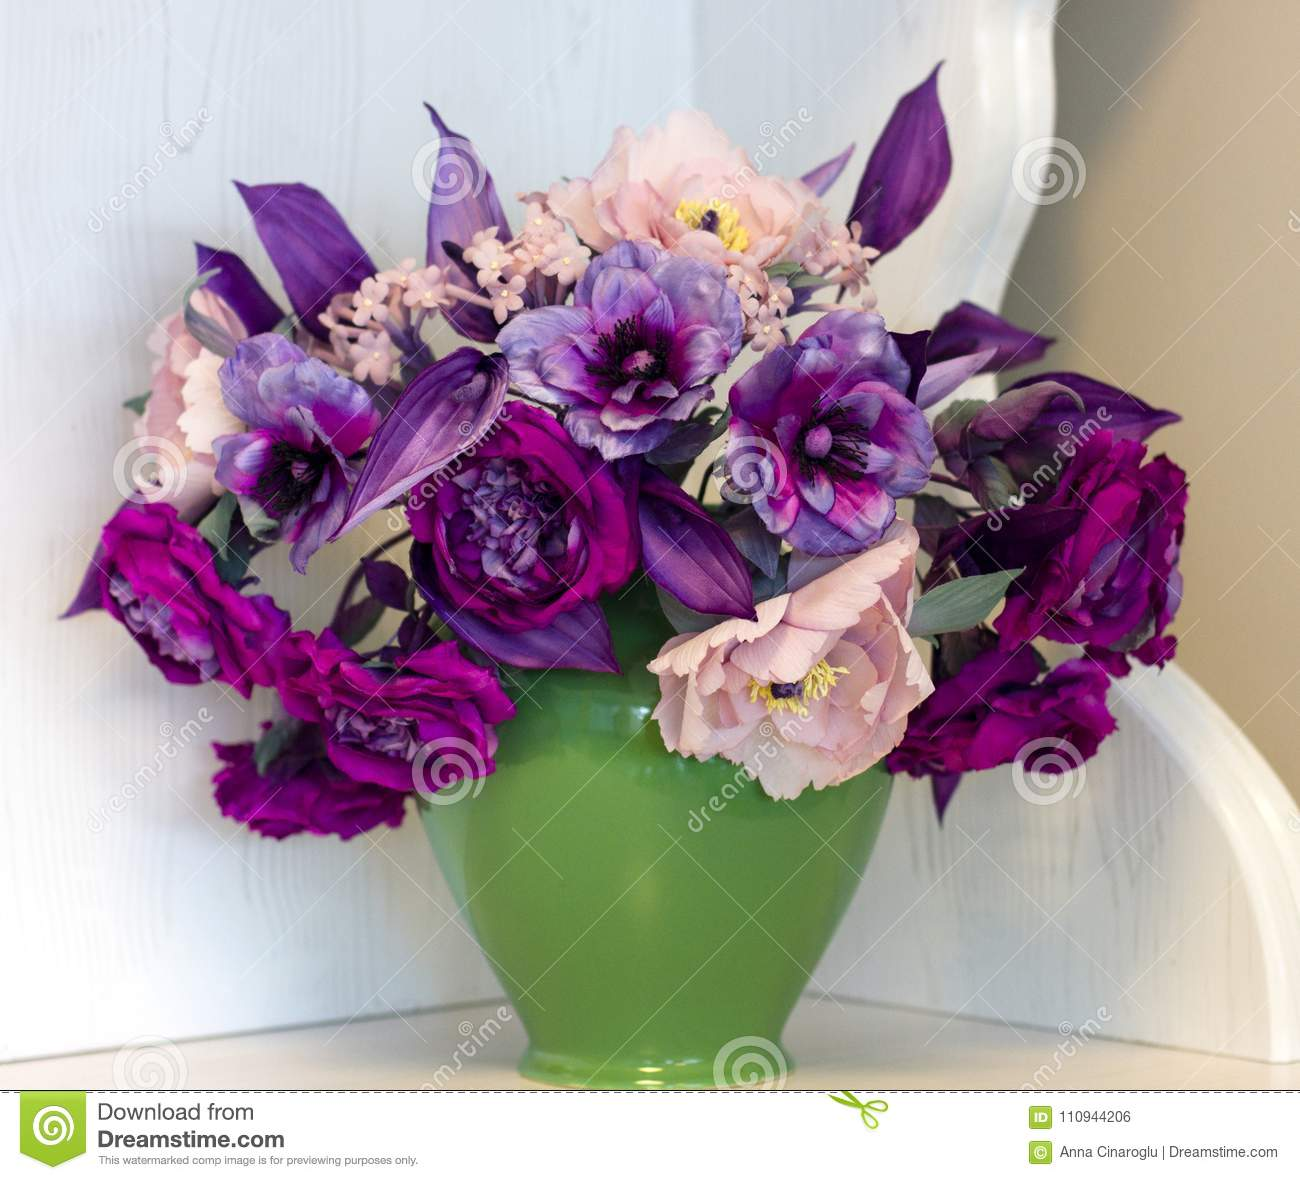 Bouquet Of Pink And Purple Peonies Artificial Flowers Made Of S Stock Photo Image Of Card Detail 110944206